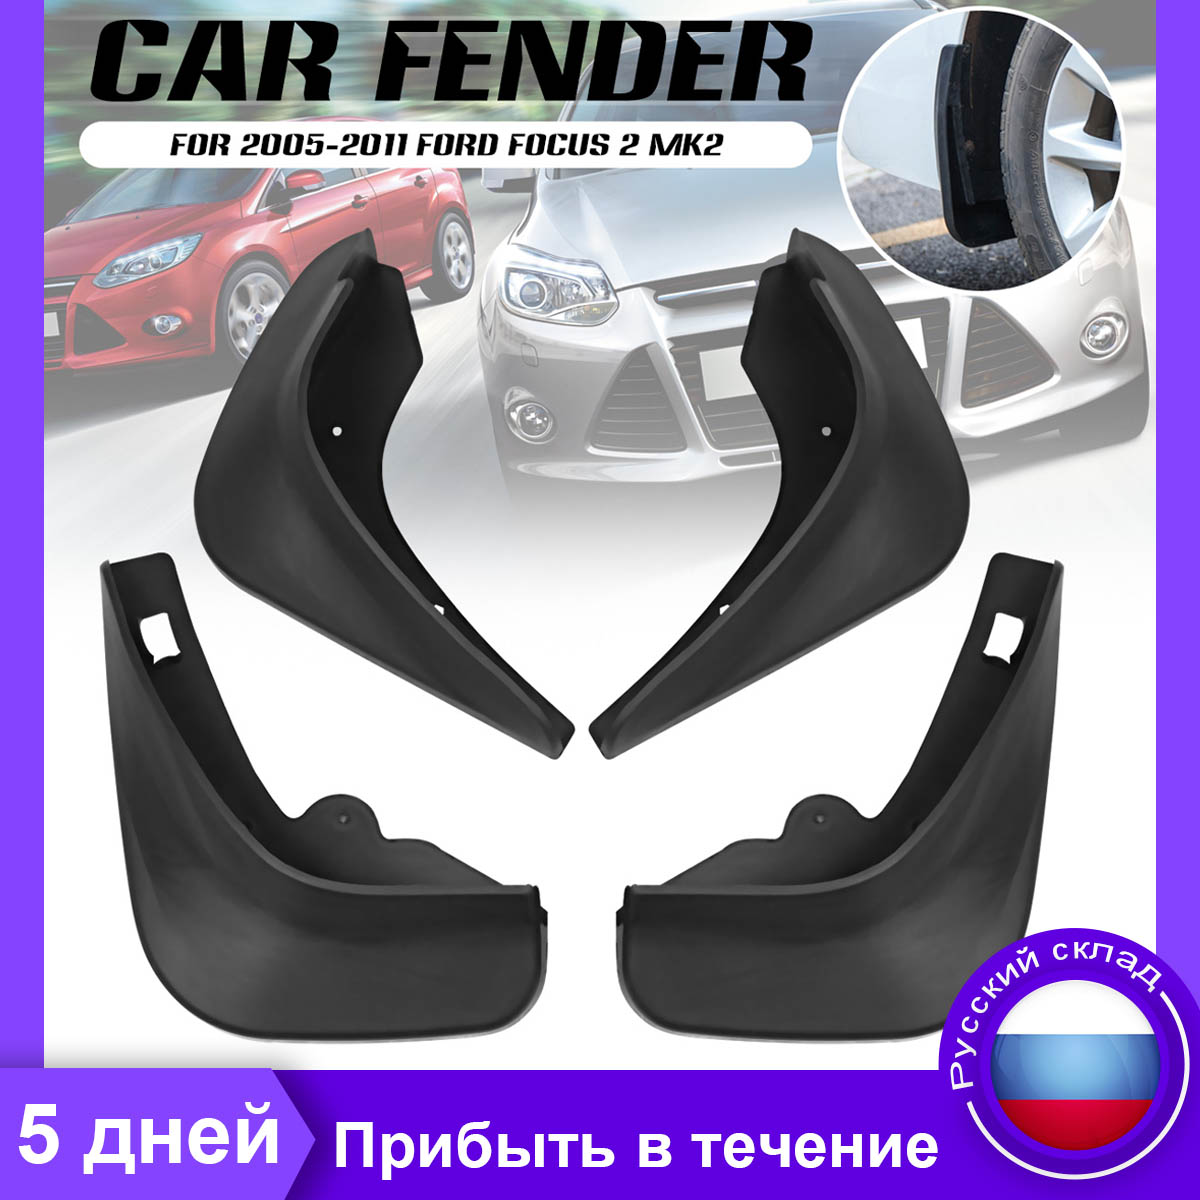 รถโคลนด้านหลัง Mudguard Splash Guards Fender Mudflaps สำหรับ Ford/Focus 2 MK2 MK2.5 Saloon Sedan 2005 -2011